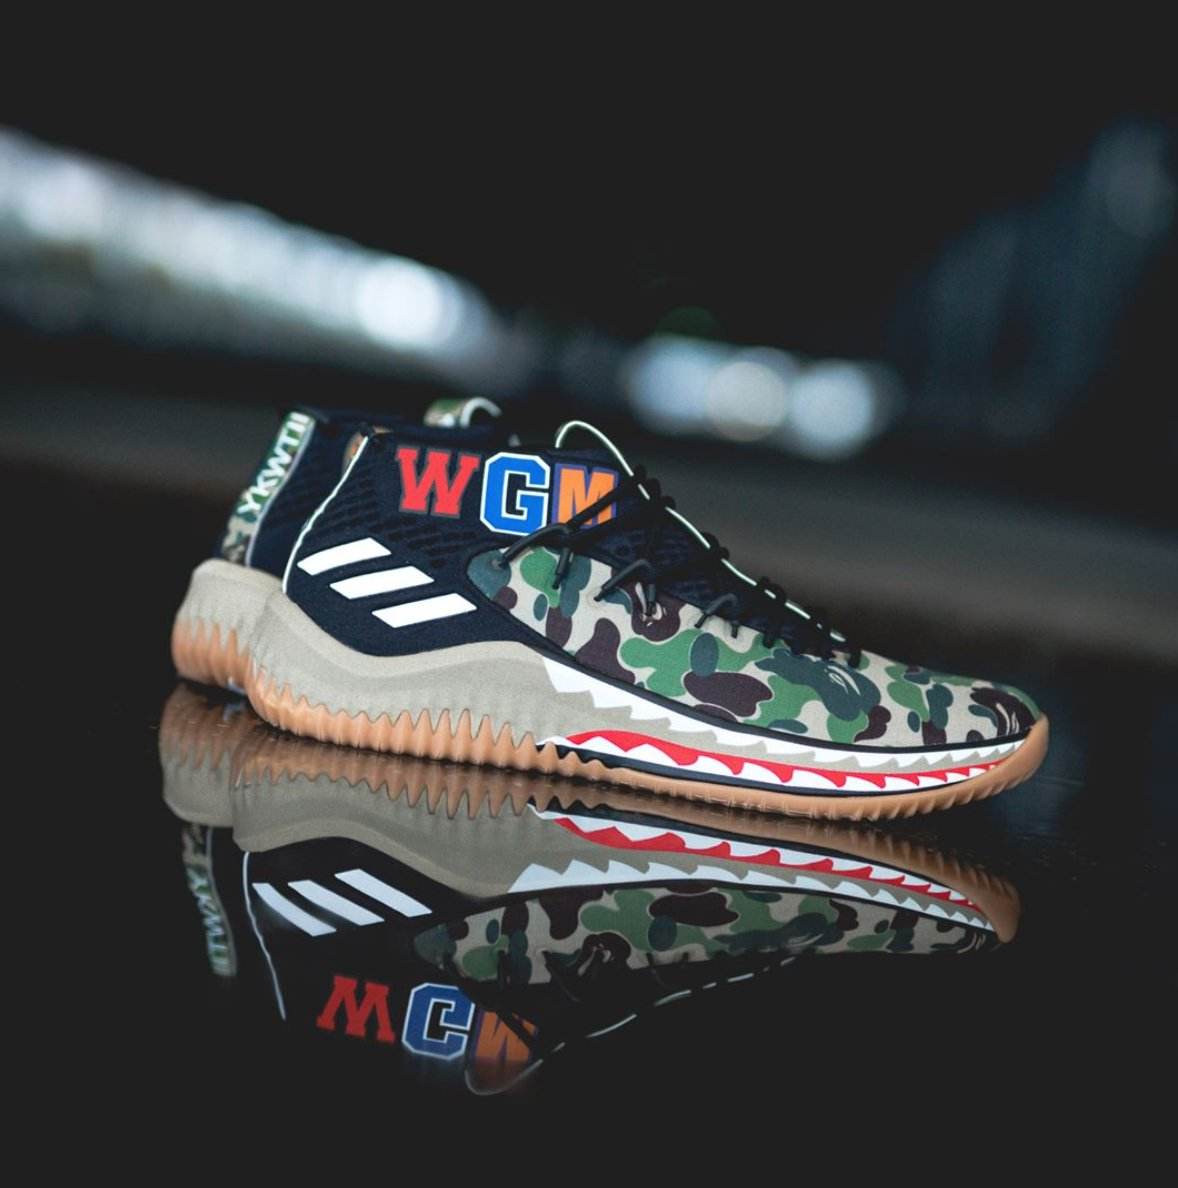 145836a78b22f8 The BAPE x adidas Dame 4 will release tomorrow in green and black at adidas.ca  at 10AM EST and then at  OTHboutique at 11AM EST via  getfrenzyapp for  215.